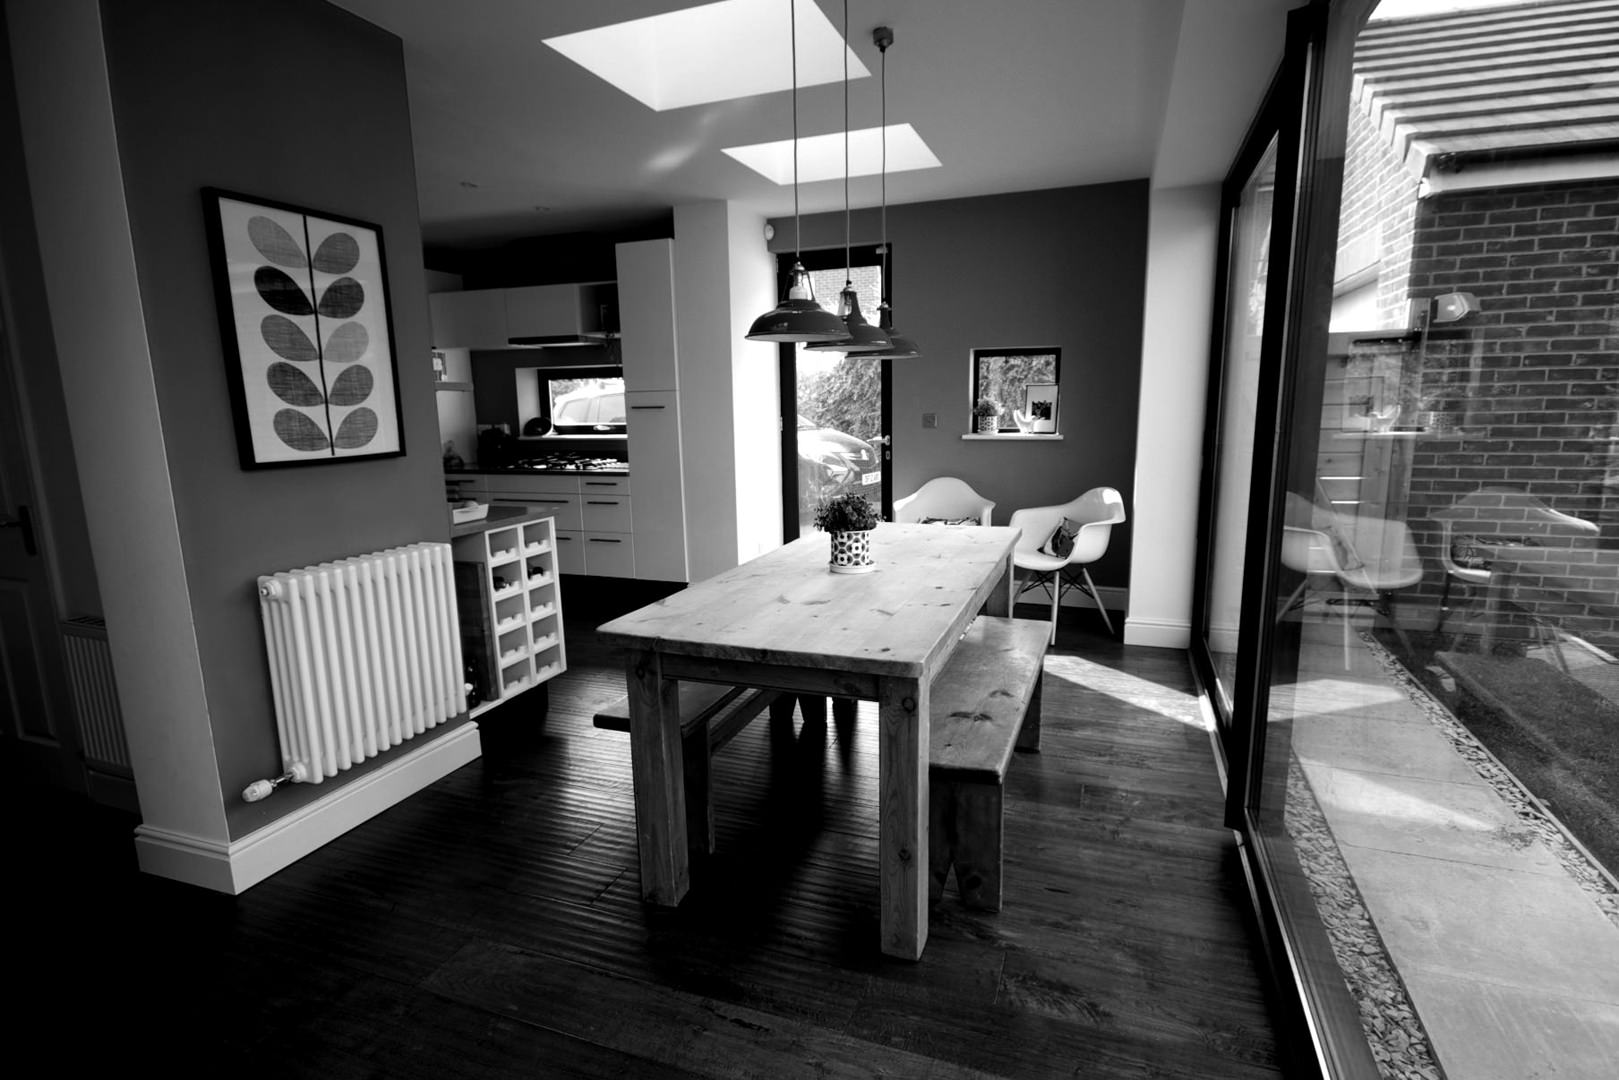 A single storey rear extension to create a new open plan kitchen/dining/living space addition to a 5 bedroom new estate house in south Liverpool